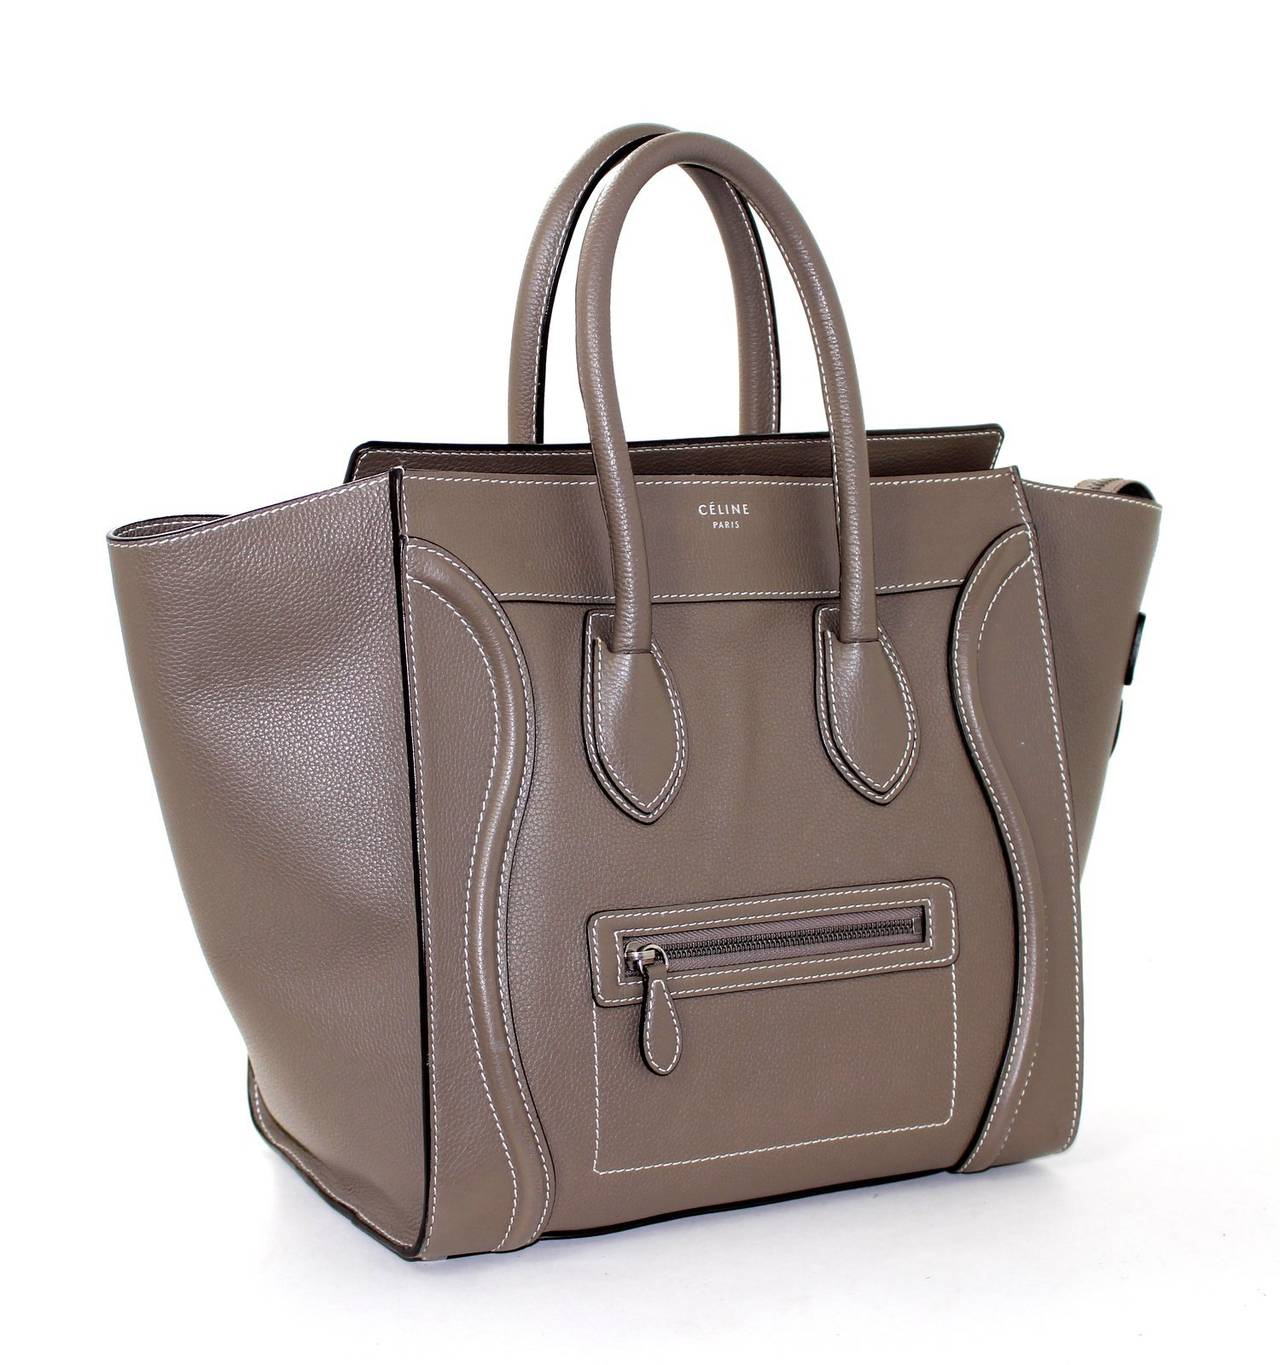 Celine Dune Mini Luggage Satchel Bag- Grey Taupe color at 1stdibs